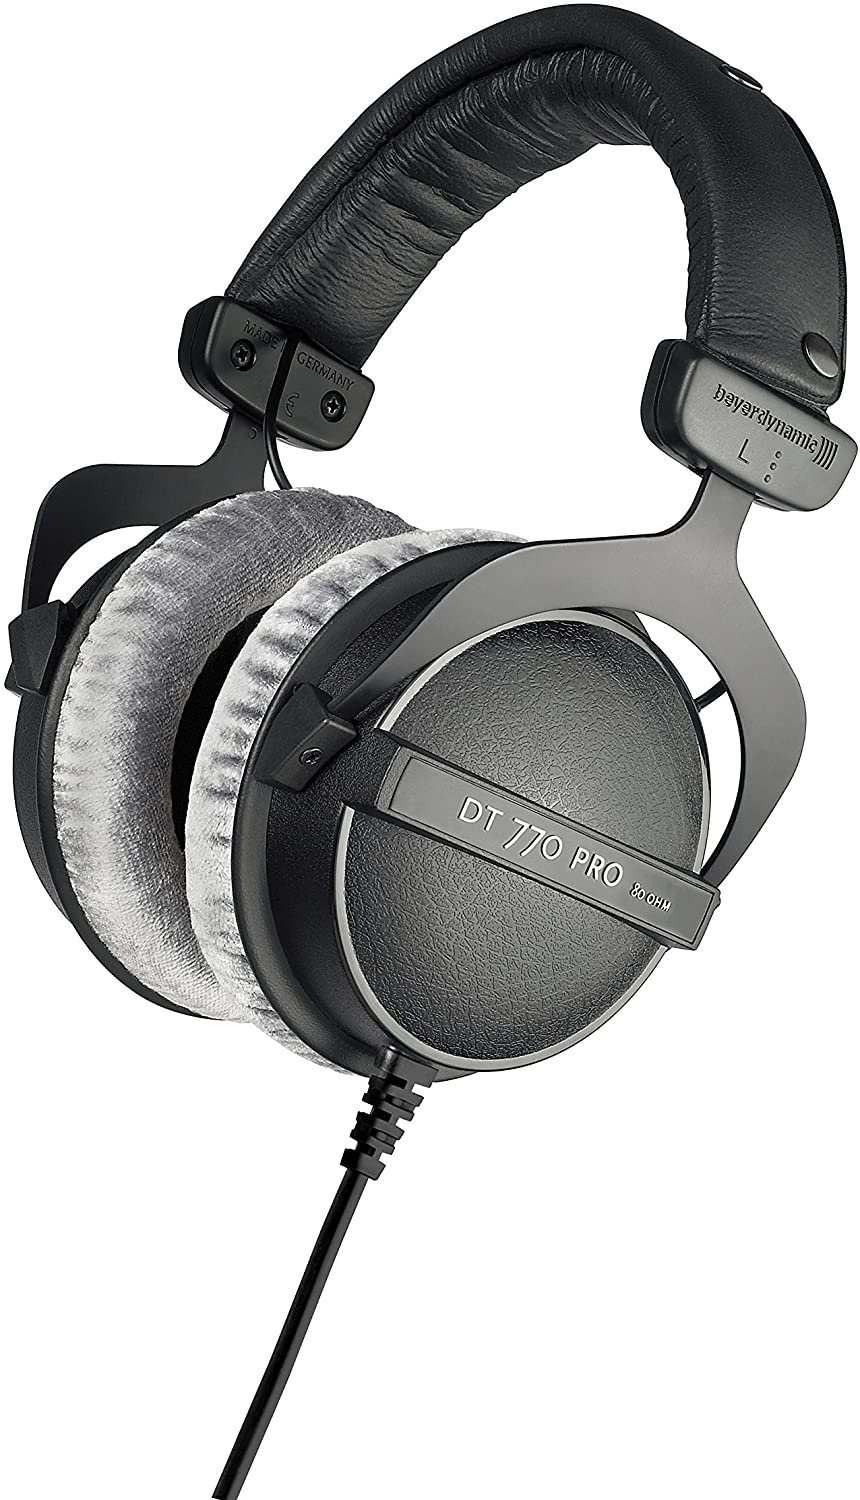 81HkUb7MFPL. AC SL1500 Best Streaming Headphones in [year] - 7 Great Products